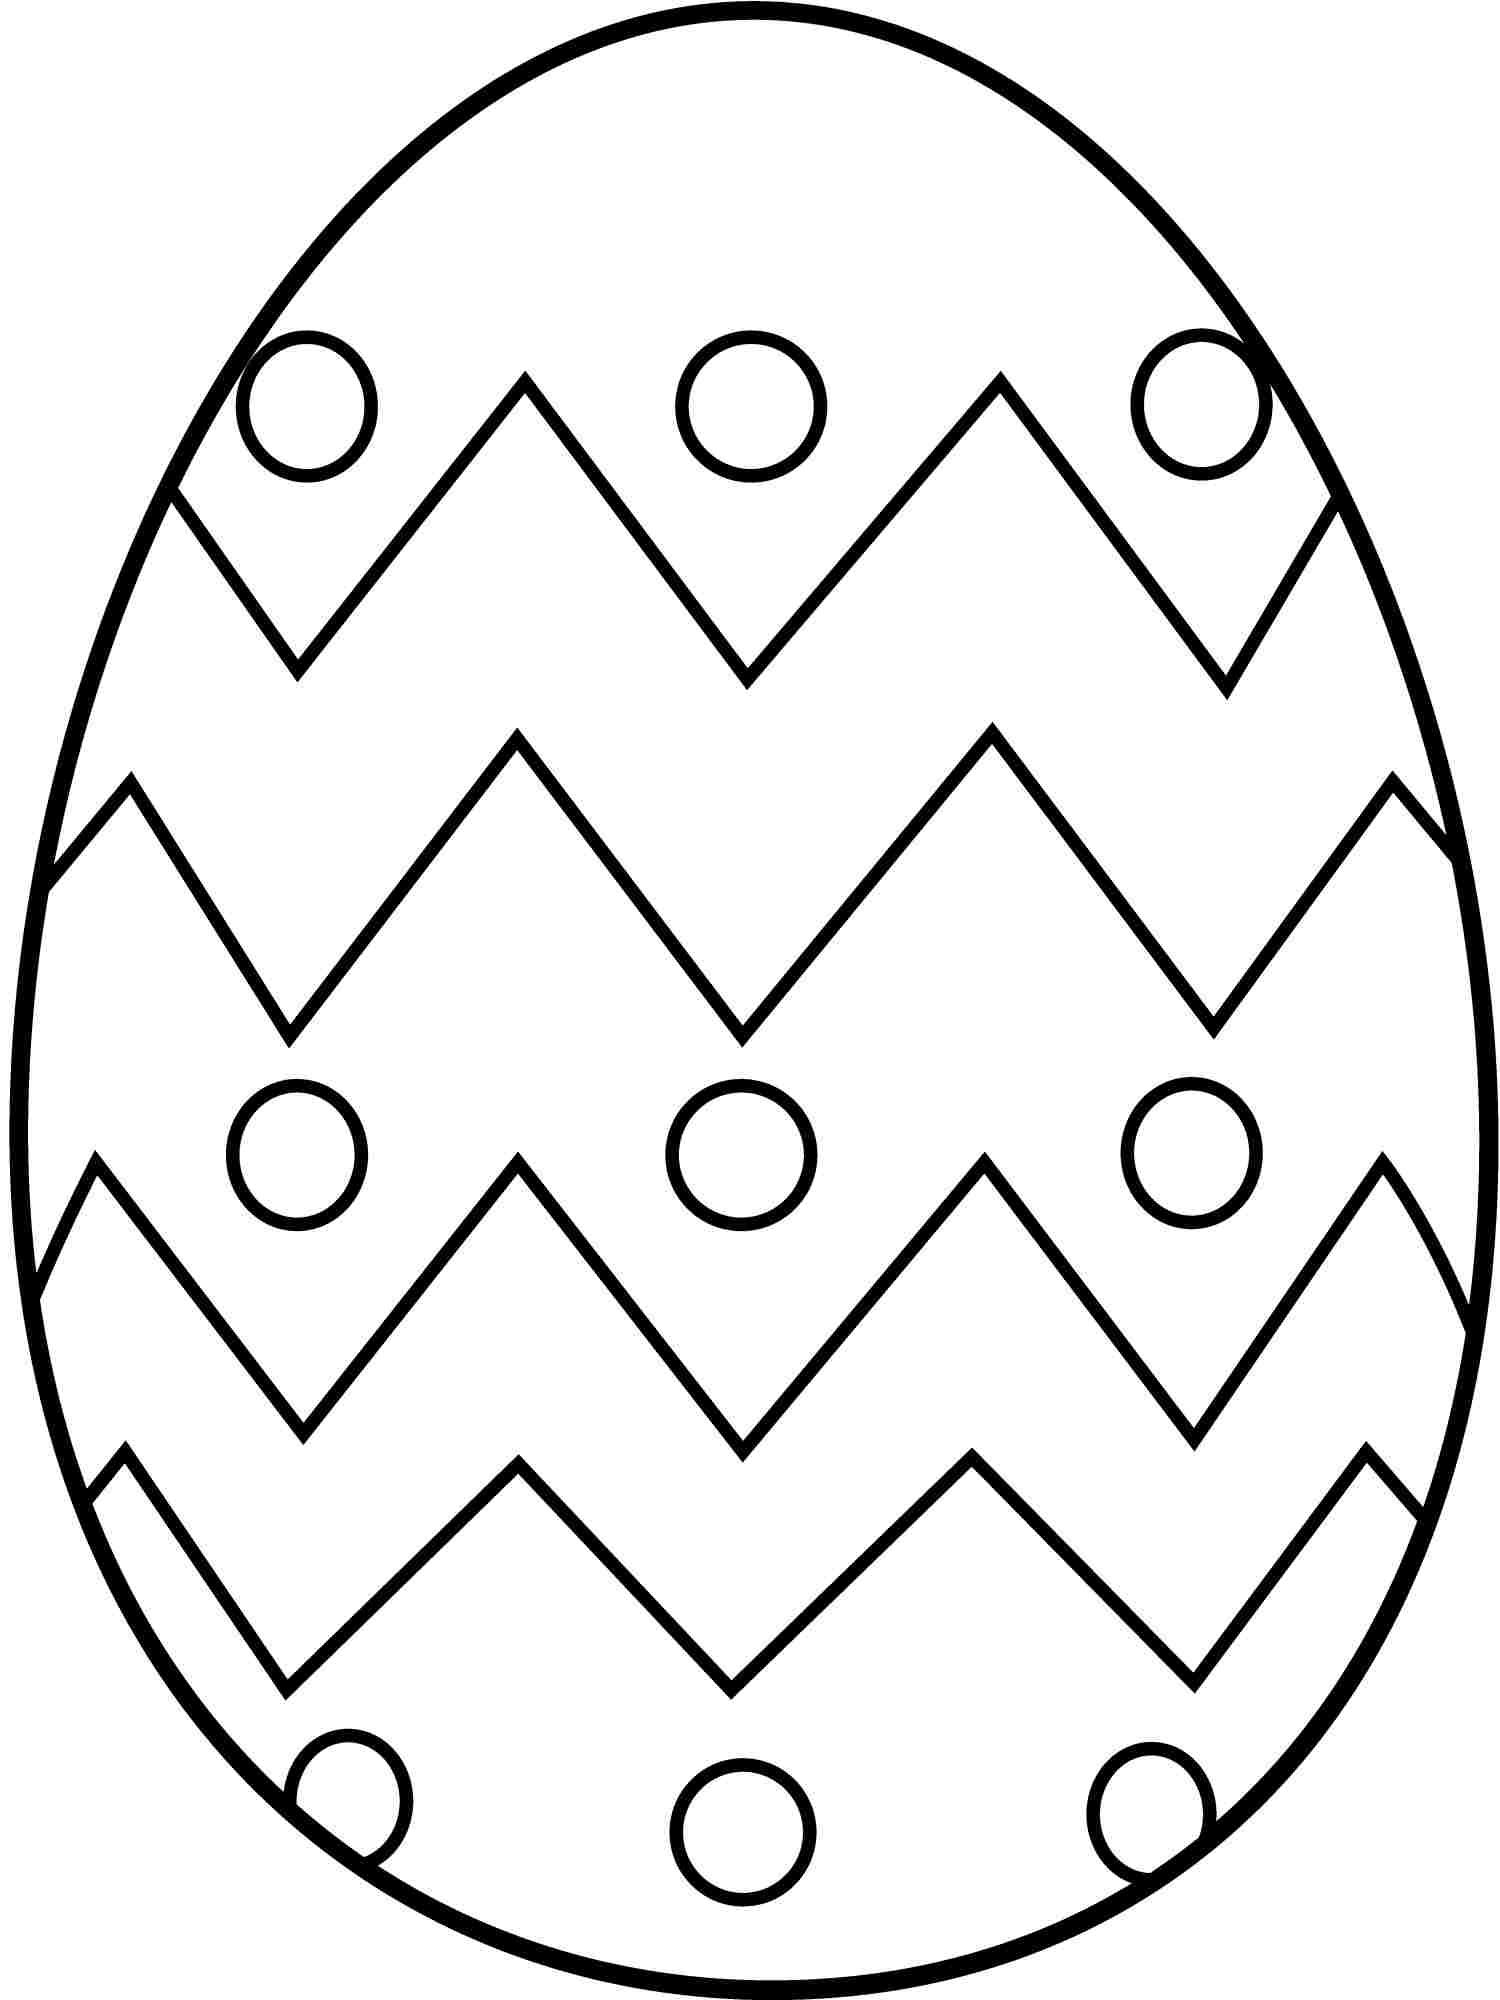 1500x2000 Pleasurable Design Ideas Easter Egg Coloring Pages For Children